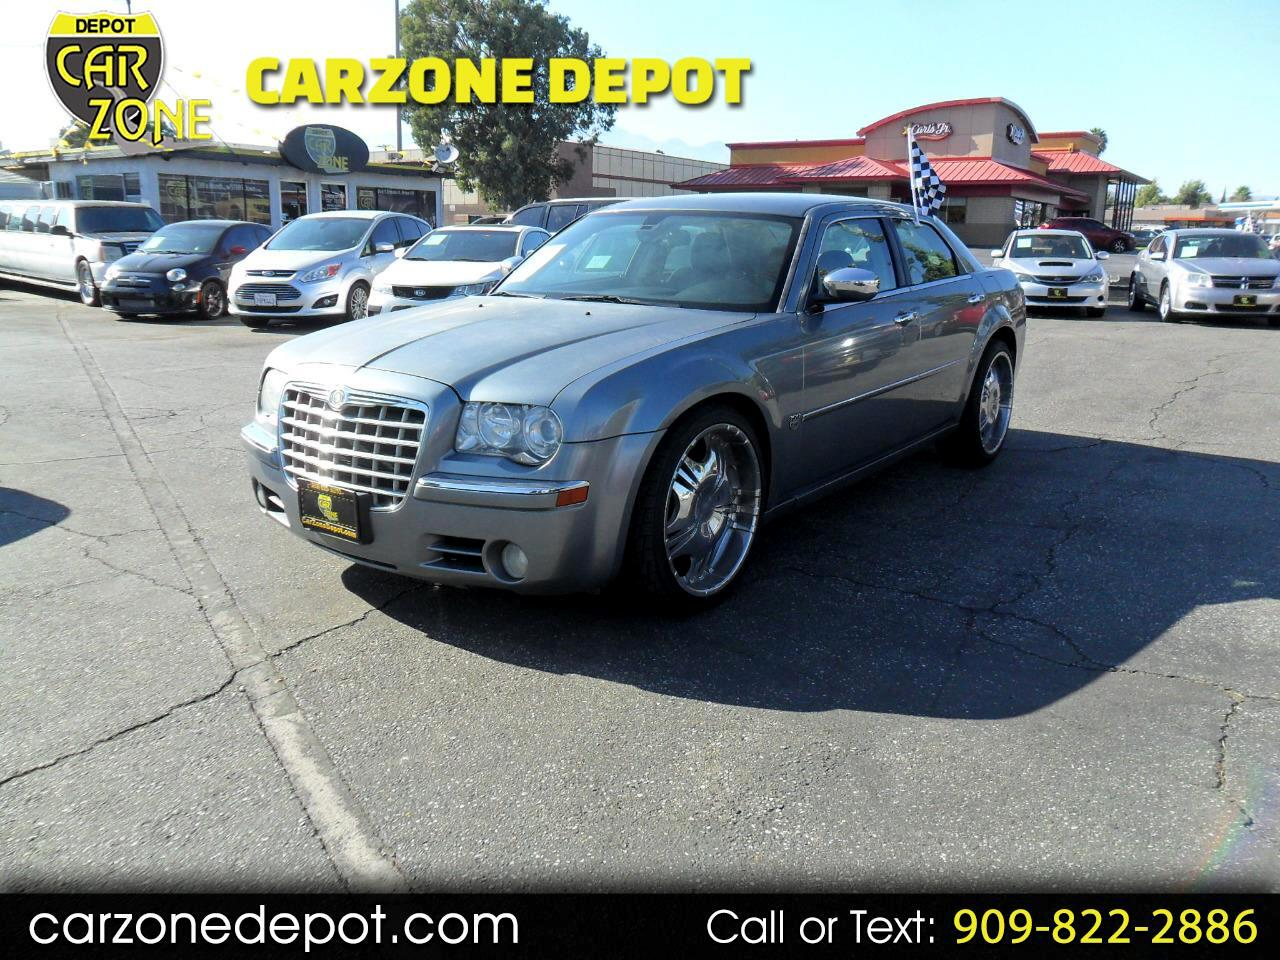 2007 Chrysler 300 C Supercharged